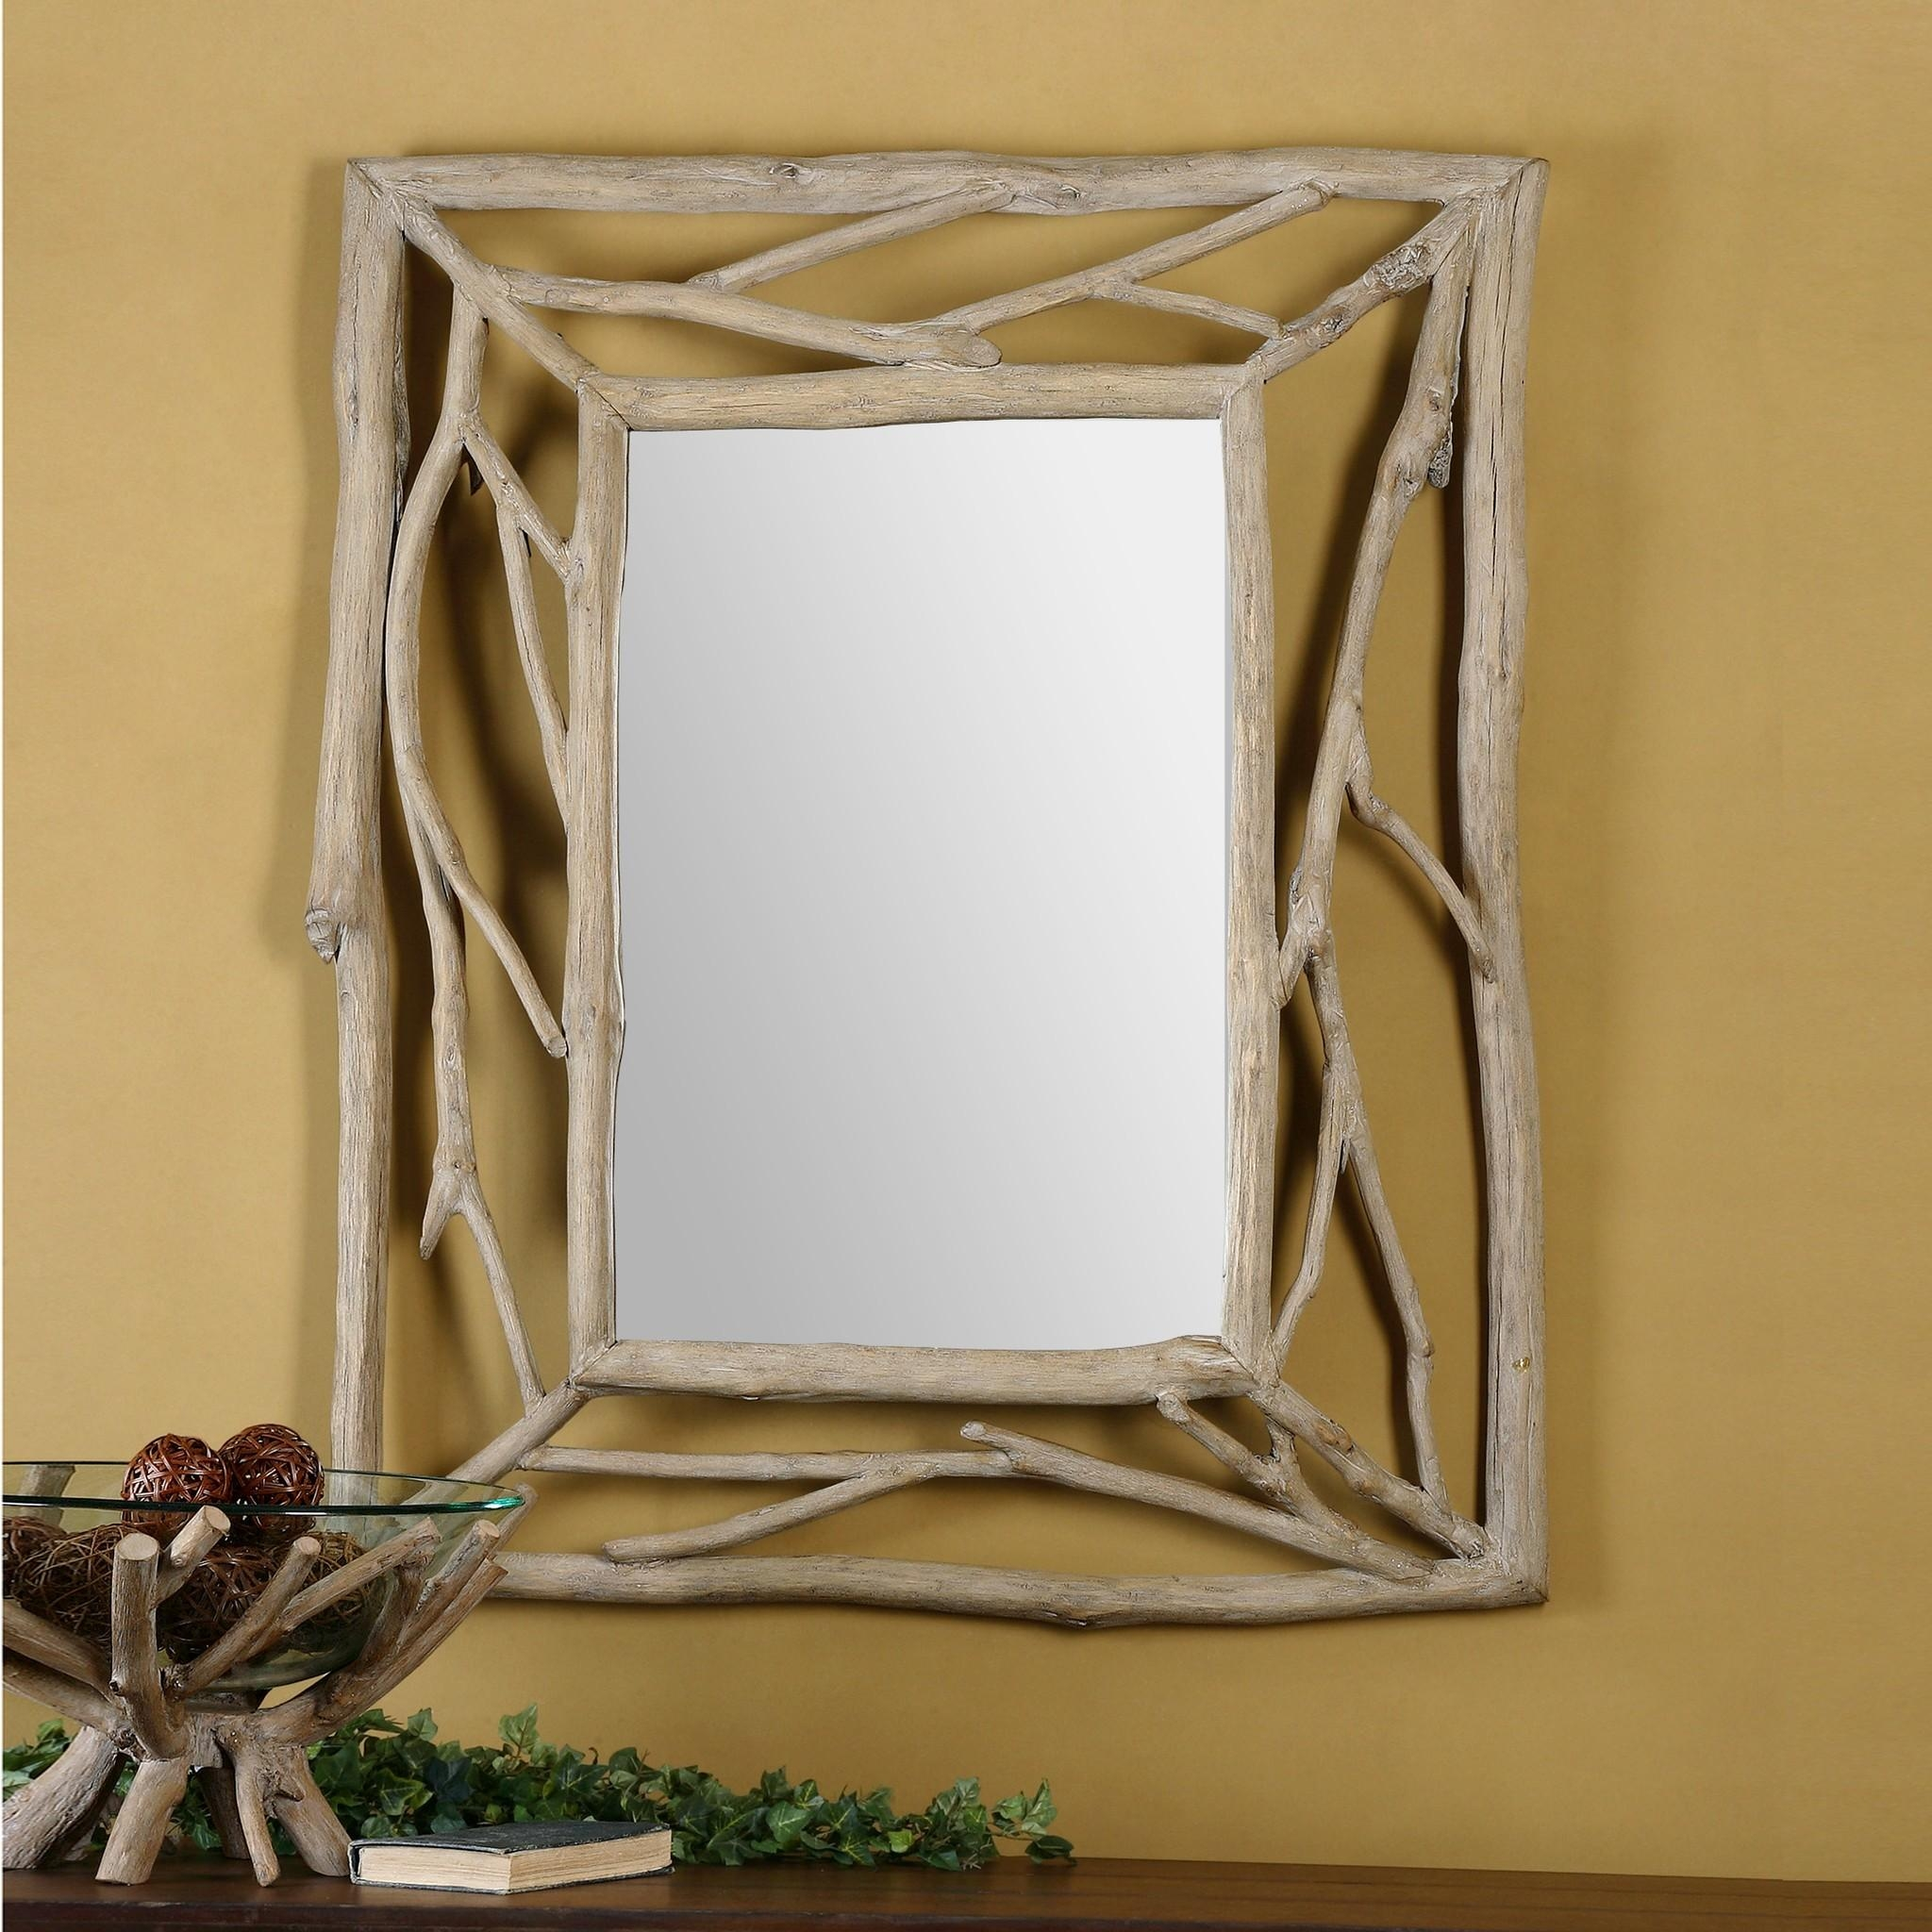 Natural Wooden Branch As The Frame With Rectangle Mirror On The Regarding Natural Wood Framed Mirrors (Image 11 of 20)